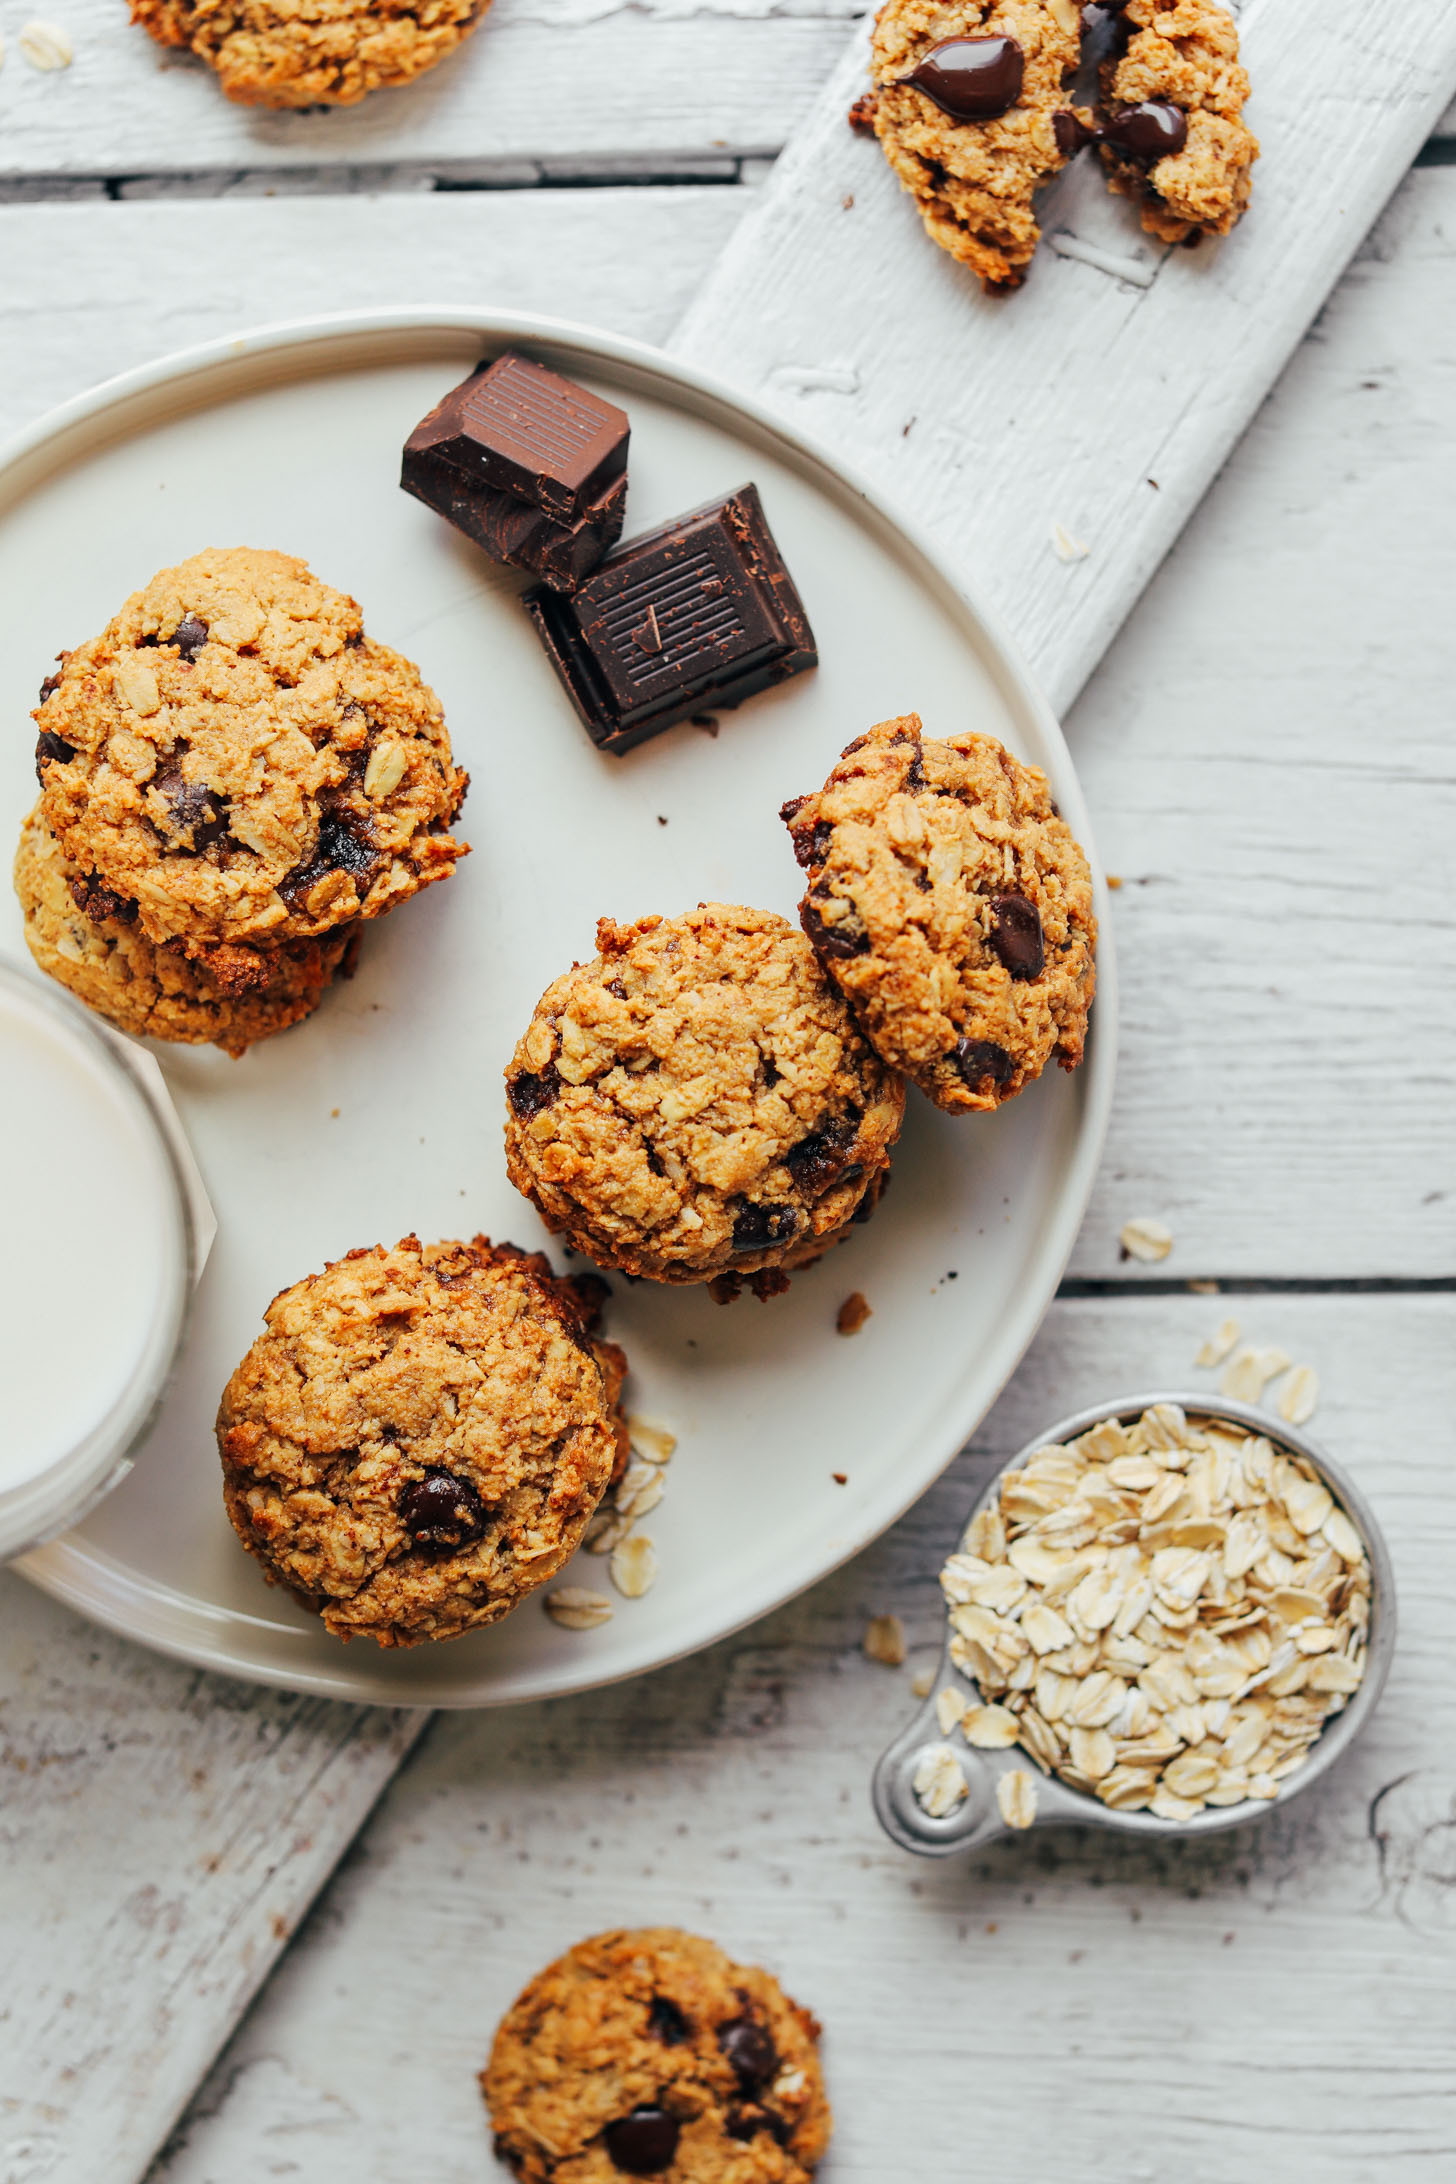 Healthy Oatmeal Chocolate Chip Cookies Recipe  healthy oatmeal chocolate chip cookies gluten free